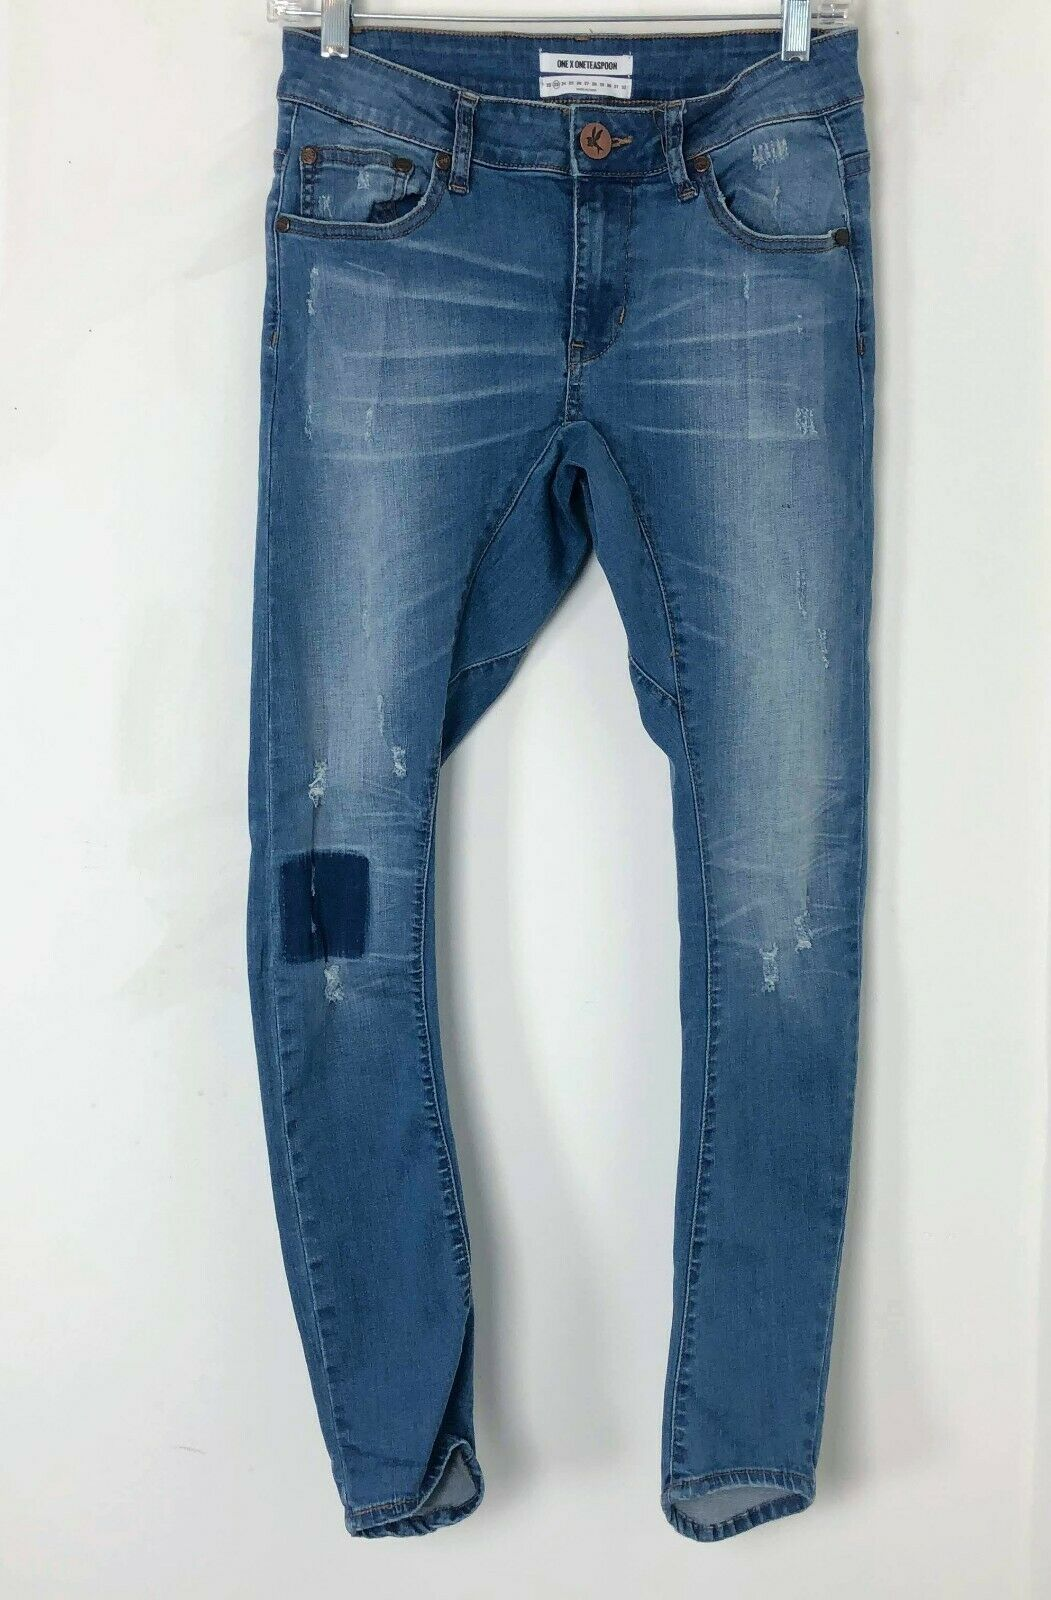 23 One Teaspoon Desperados Americano Low Skinny Bowed Fitted Curved Jean Patch